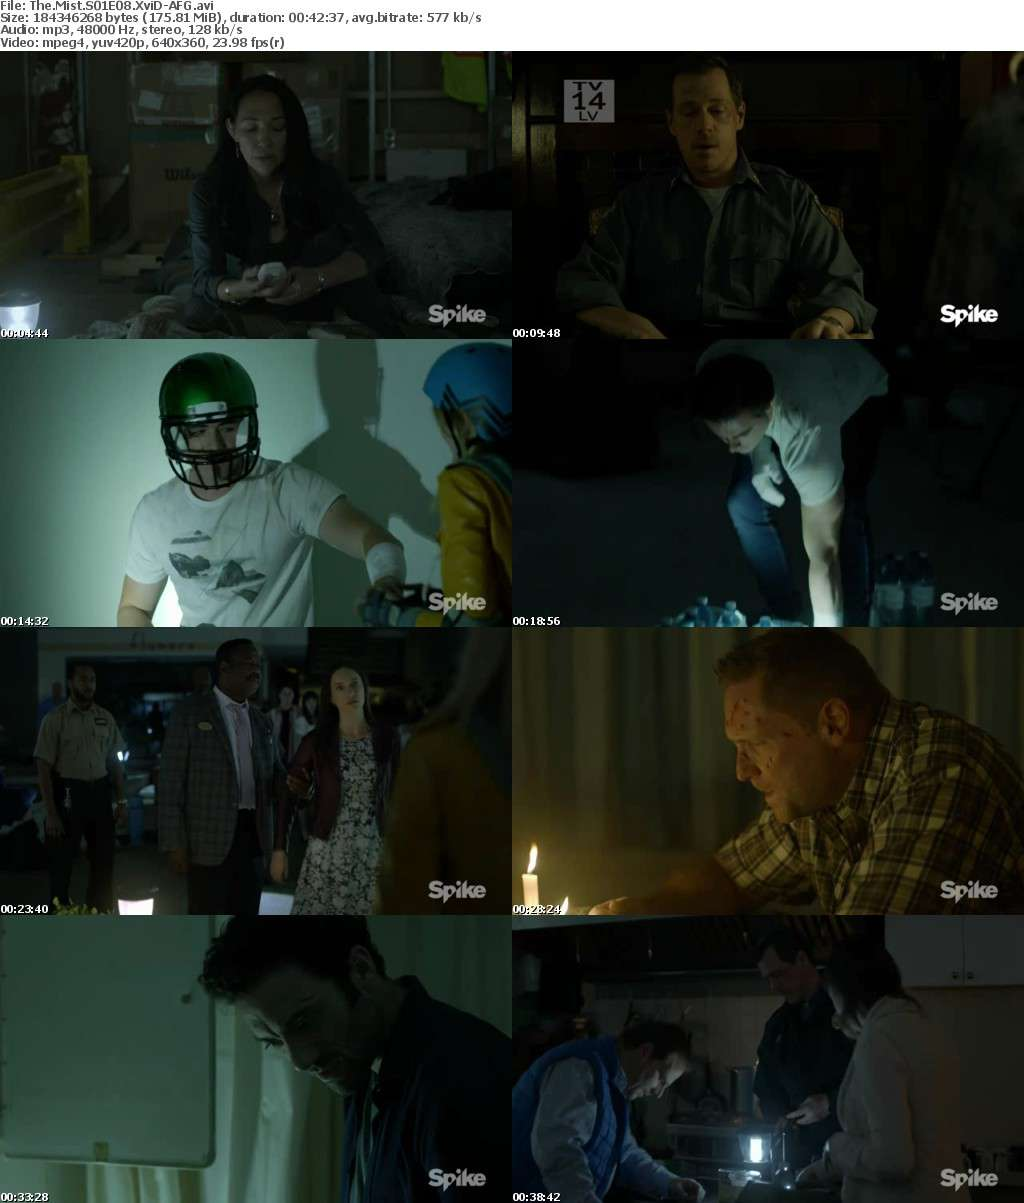 The Mist S01E08 XviD-AFG